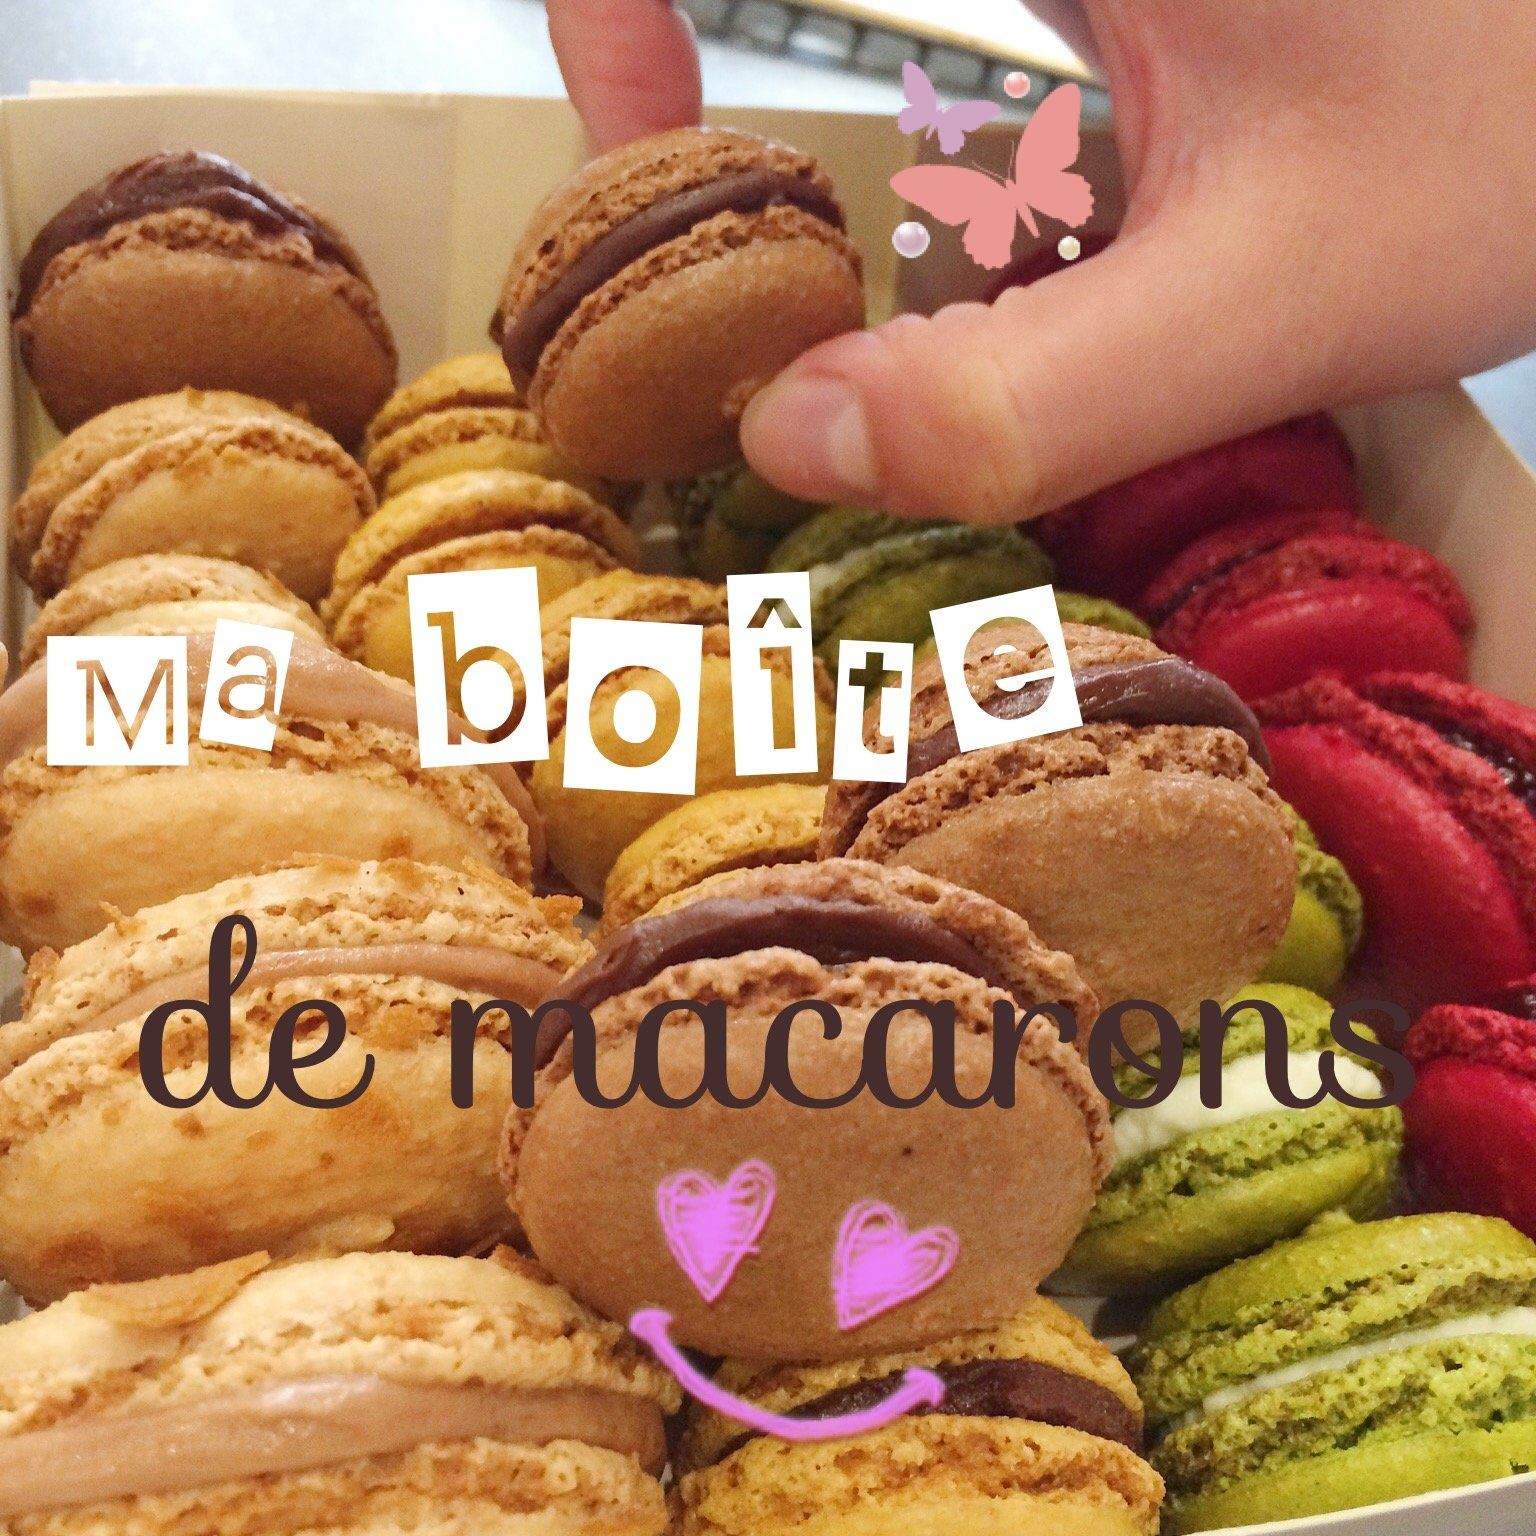 French Macarons class in english 3/11 (11h - 13h)